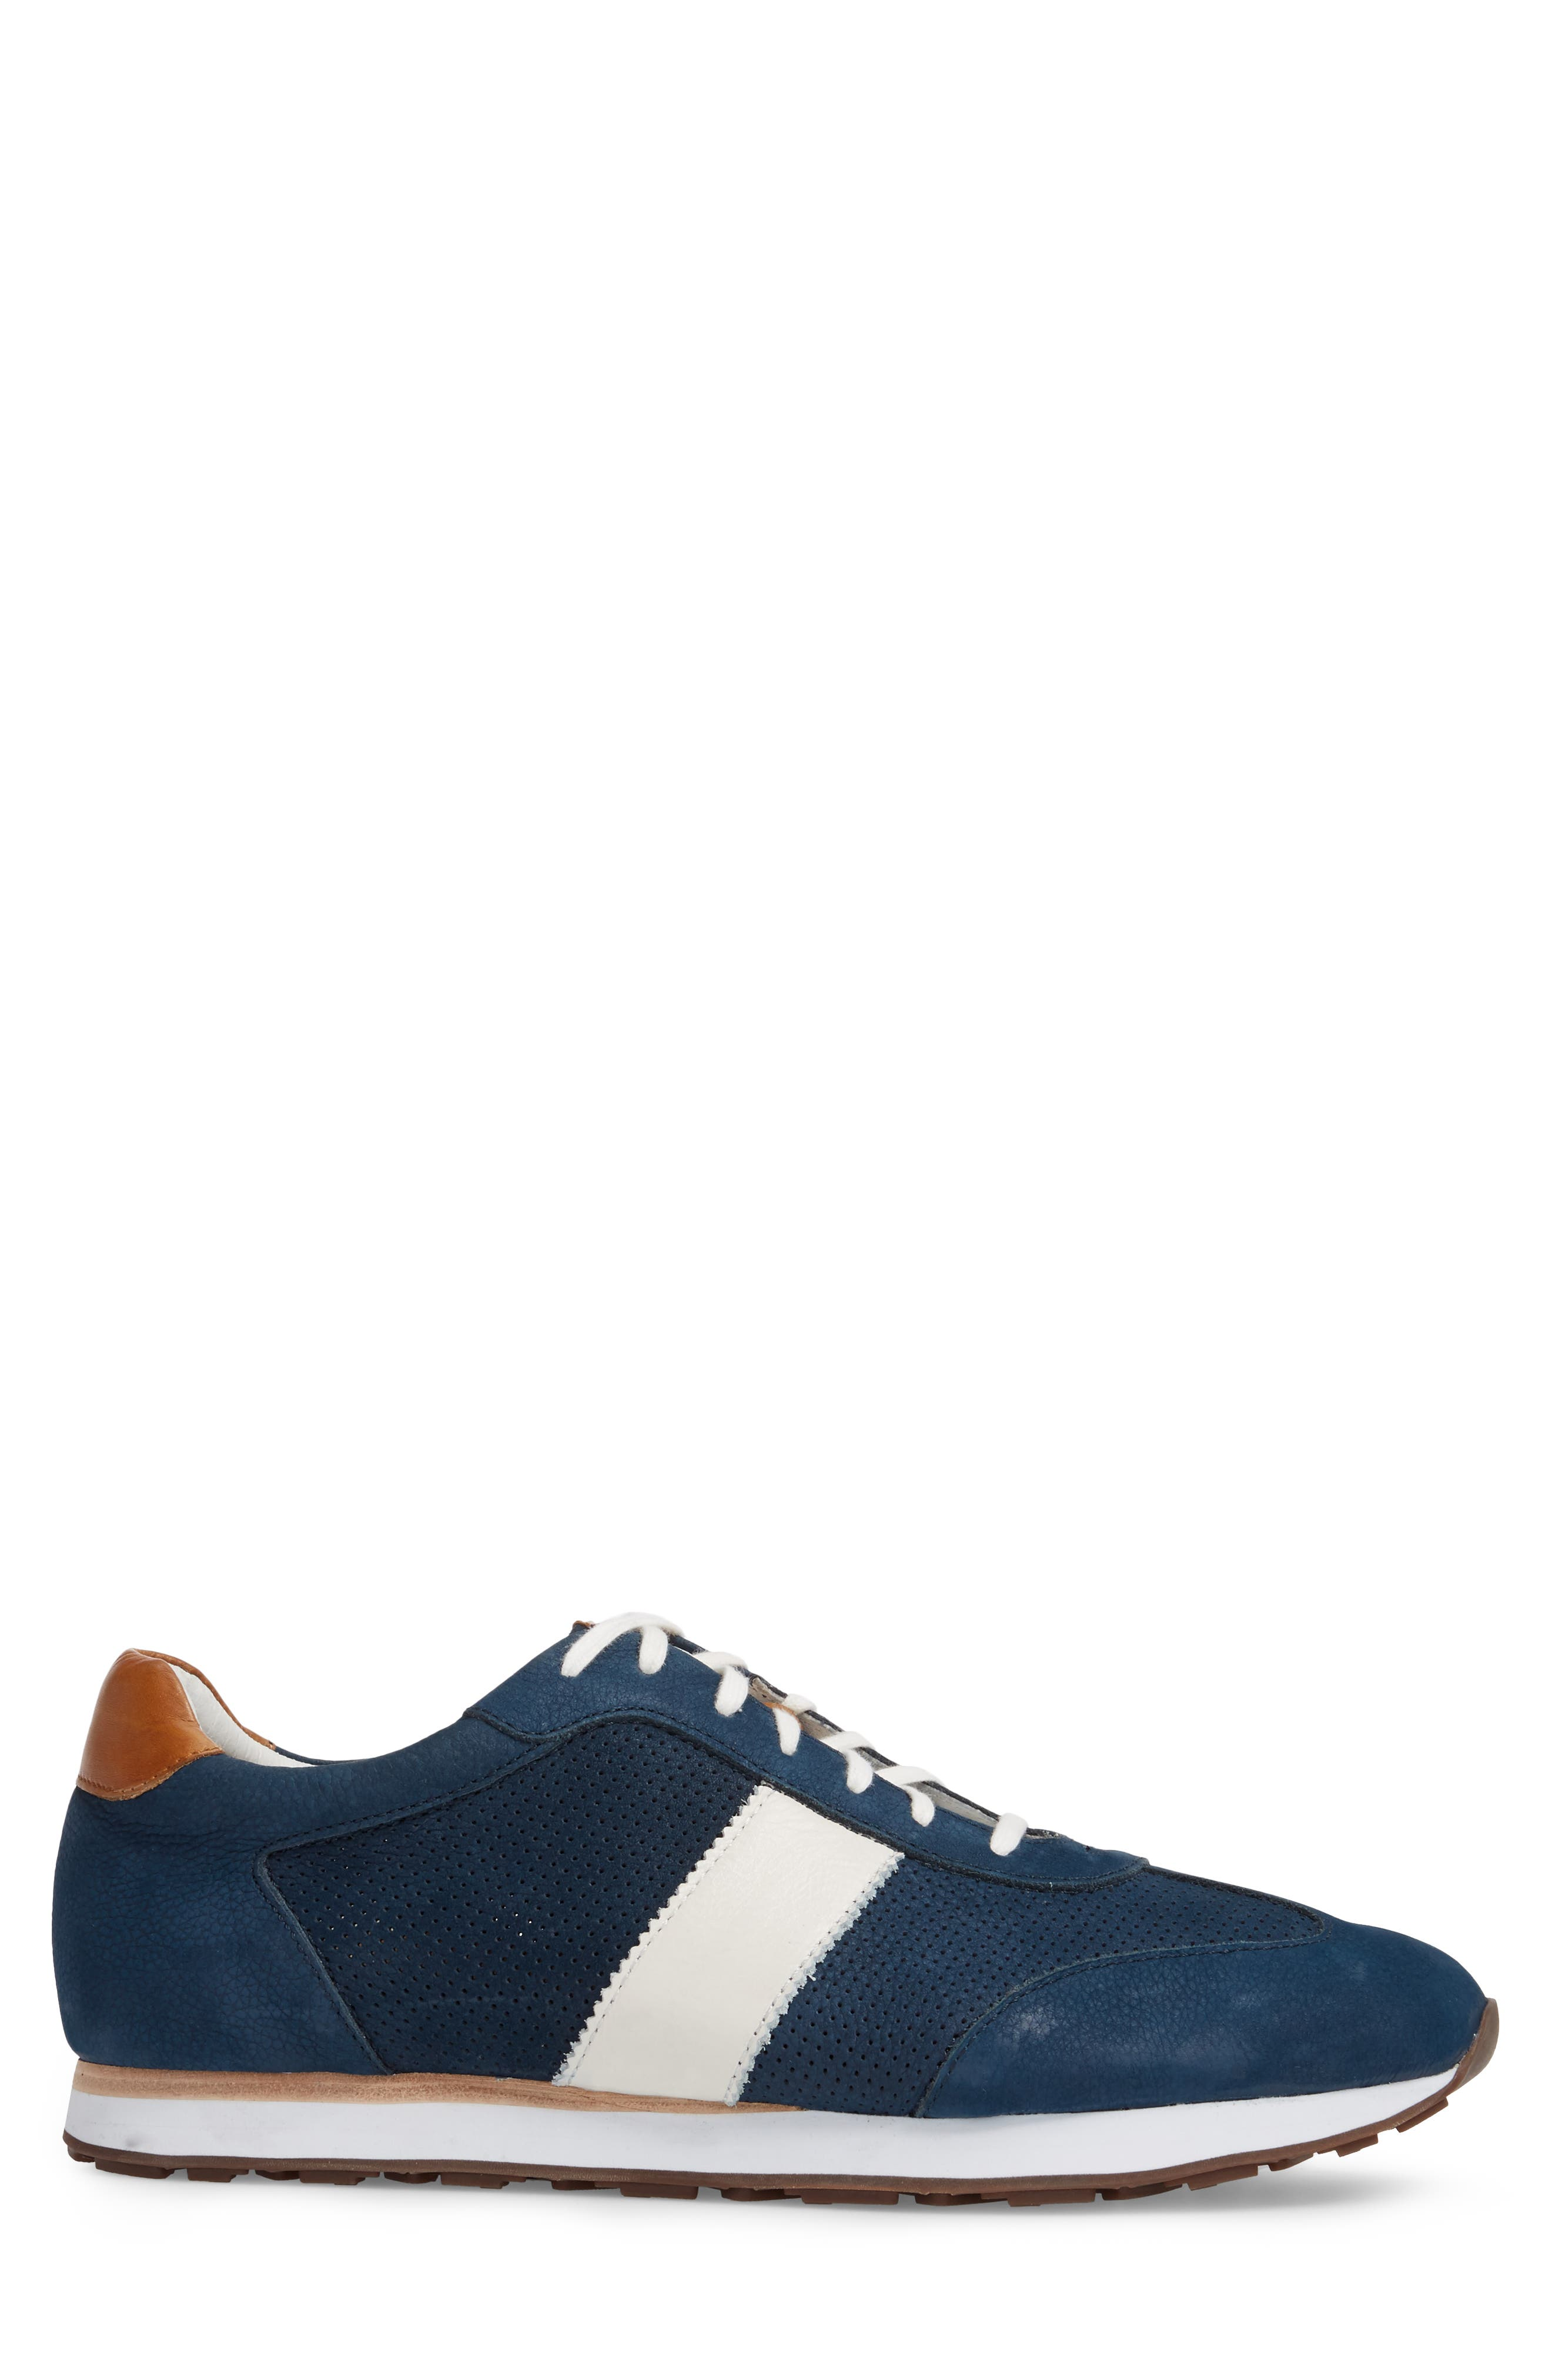 Malek Perforated Low Top Sneaker,                             Alternate thumbnail 3, color,                             Navy Nubuck Leather